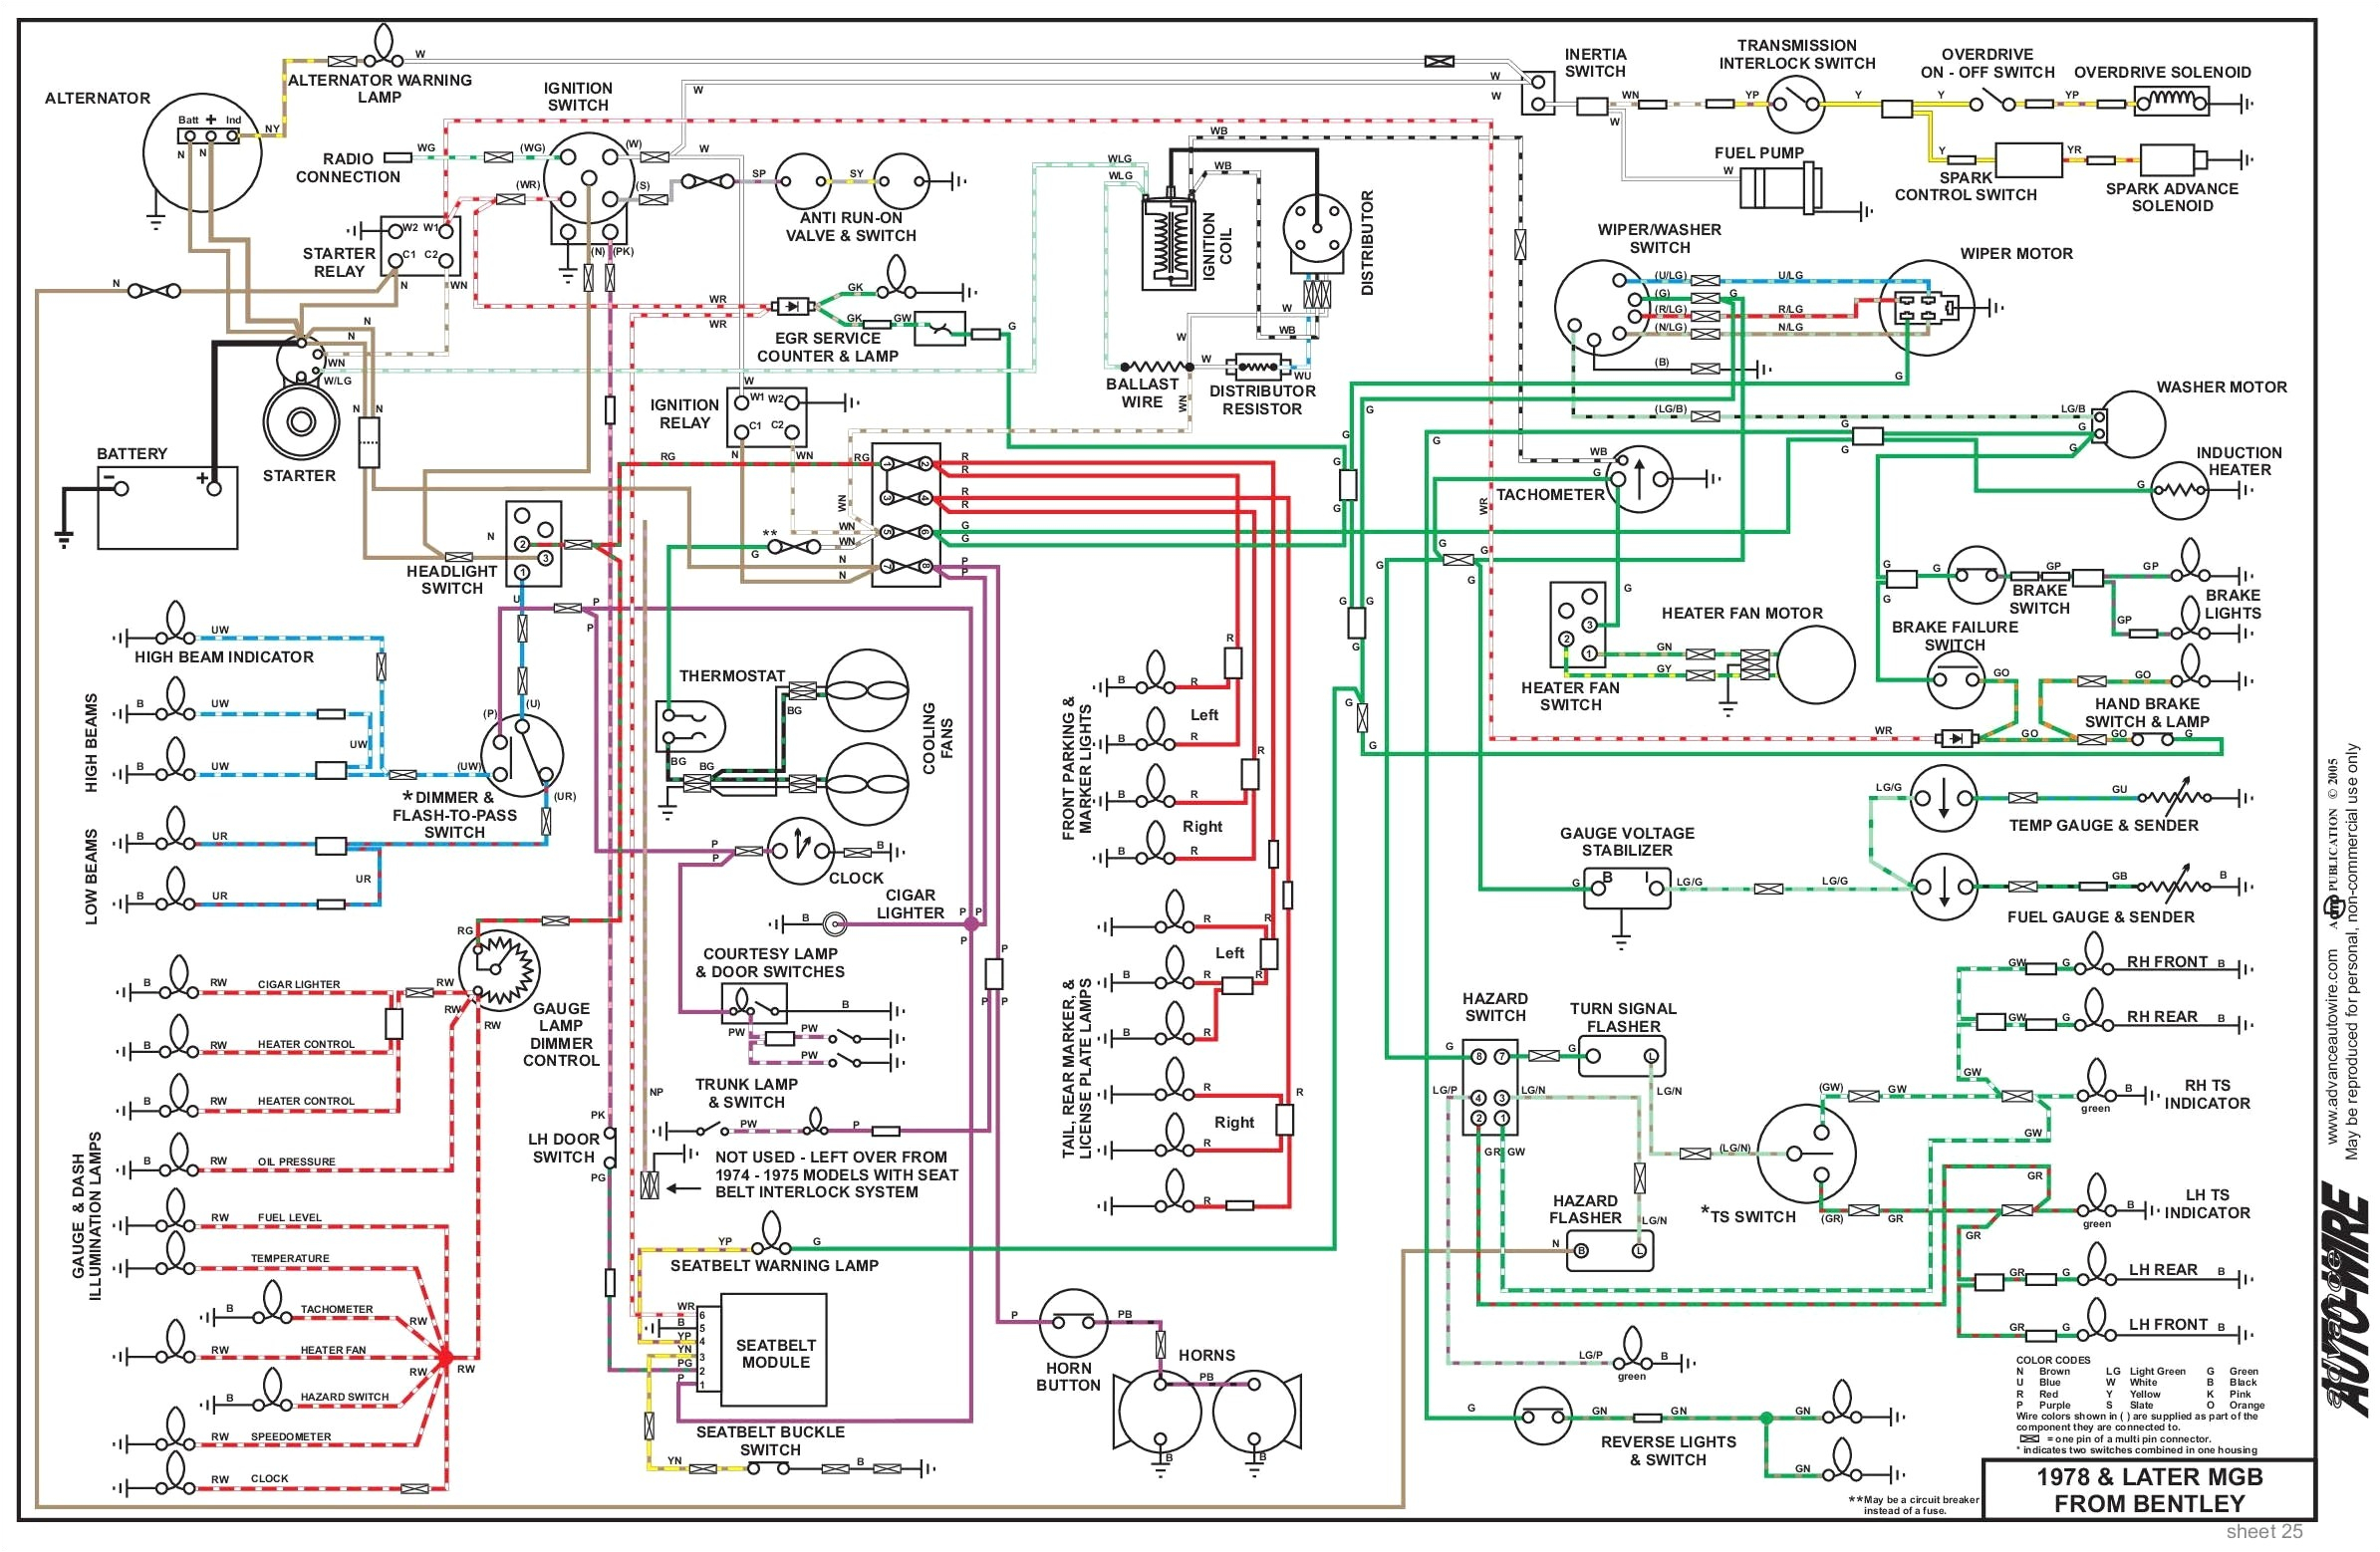 1976 mgb wiring diagram wiring diagram for you mg zr wiring diagram 1976 mgb wiring diagram